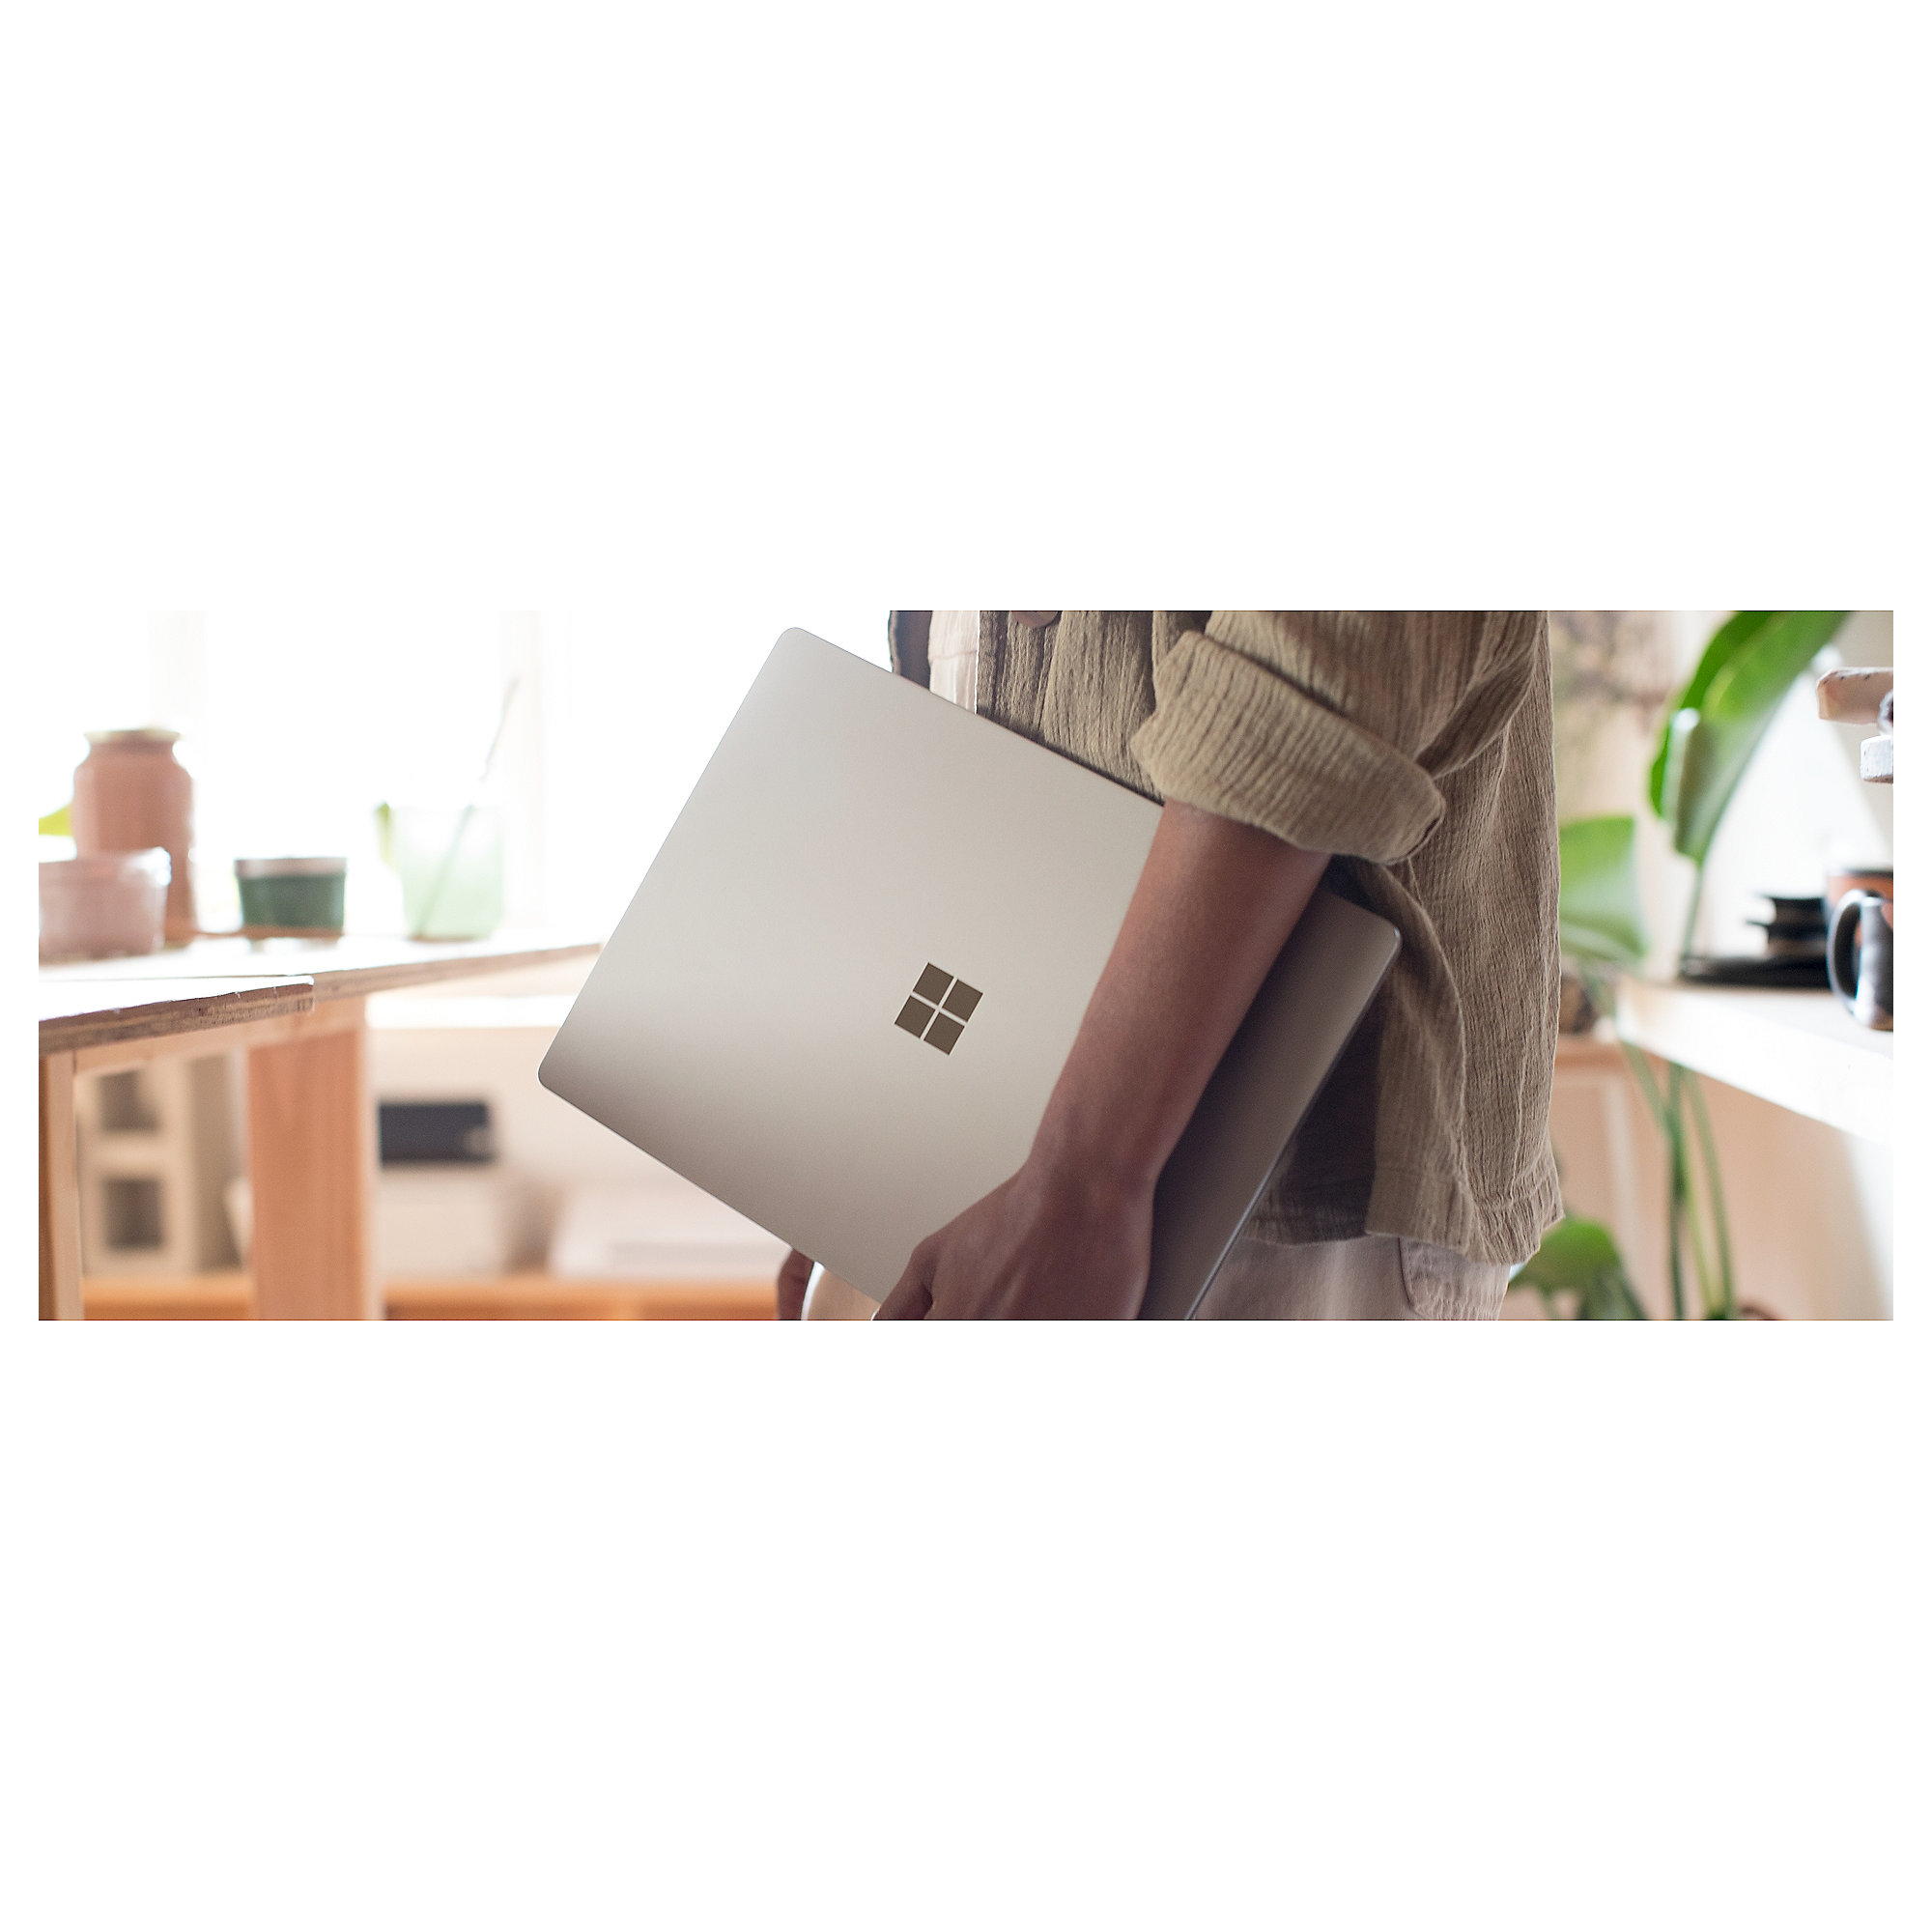 "Microsoft Surface Laptop DAG-00010 i5-7200U 8GB/256GB SSD 13"" FHD Windows 10 S"